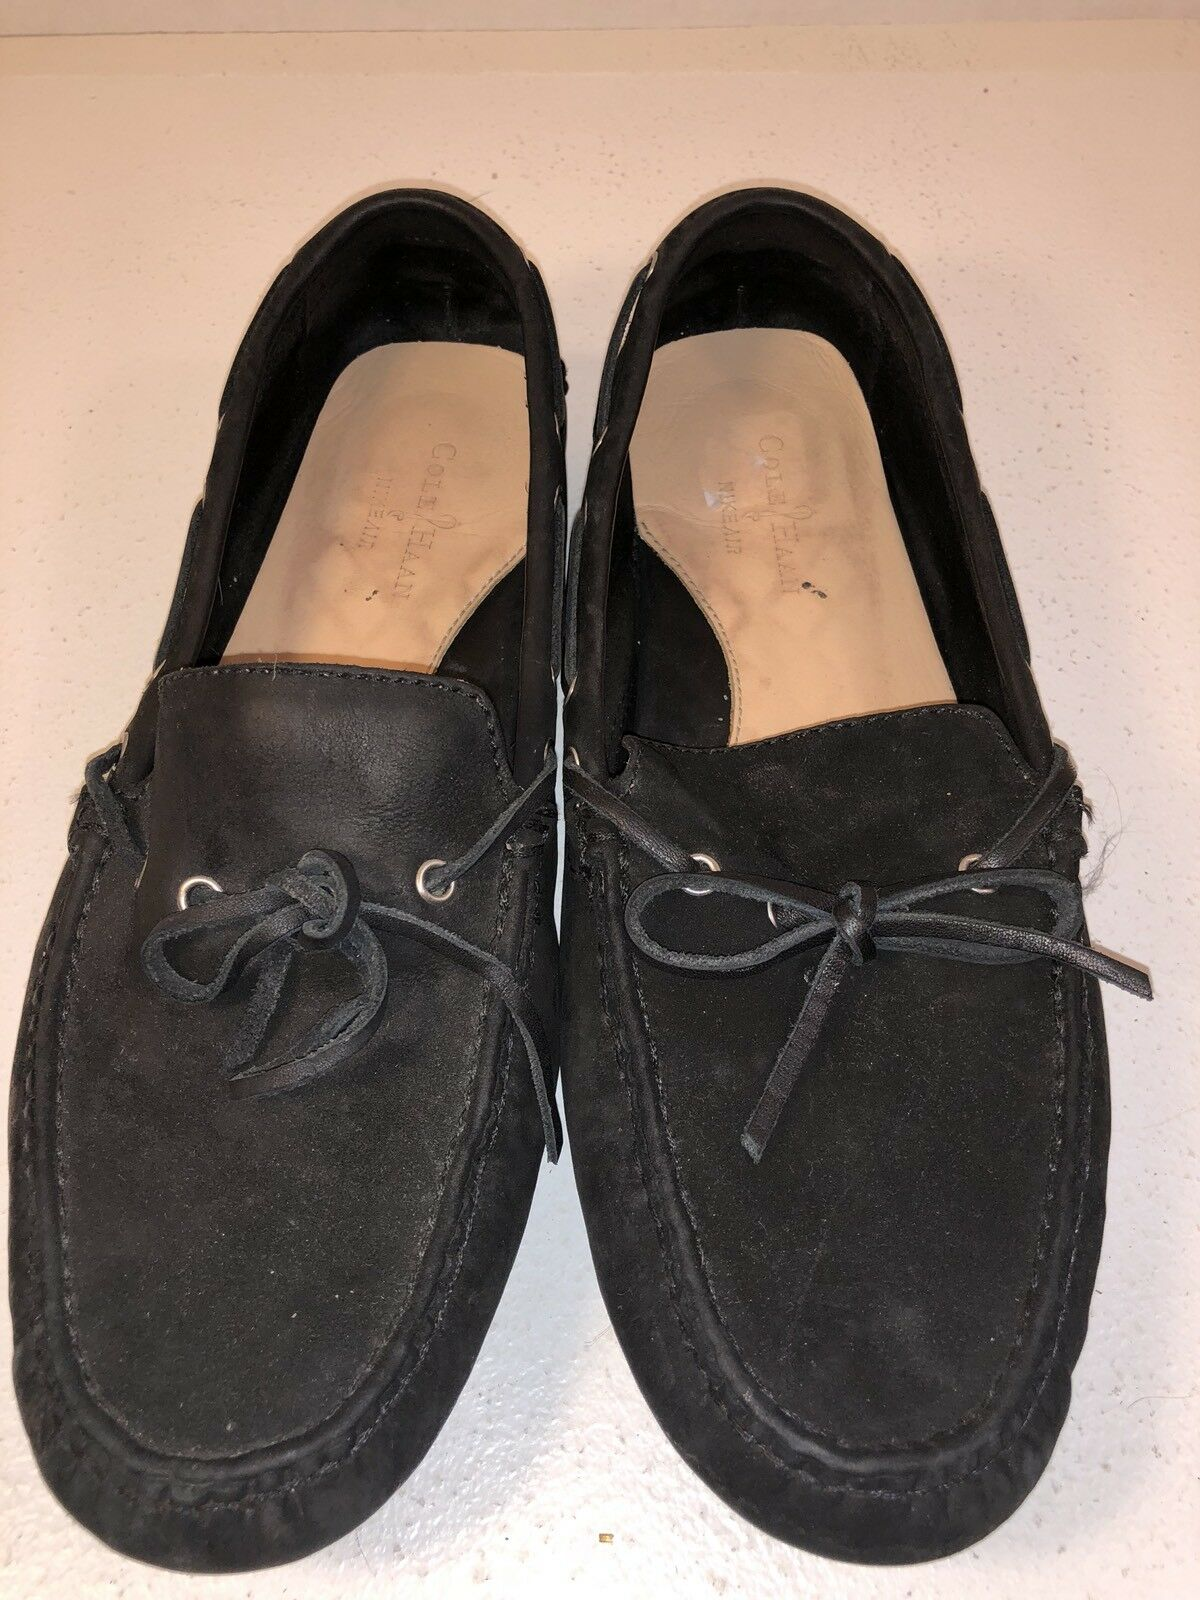 Cole Haan Women's shoes Size 9 1 2M Black Leather Driving Moccasin Boat shoes